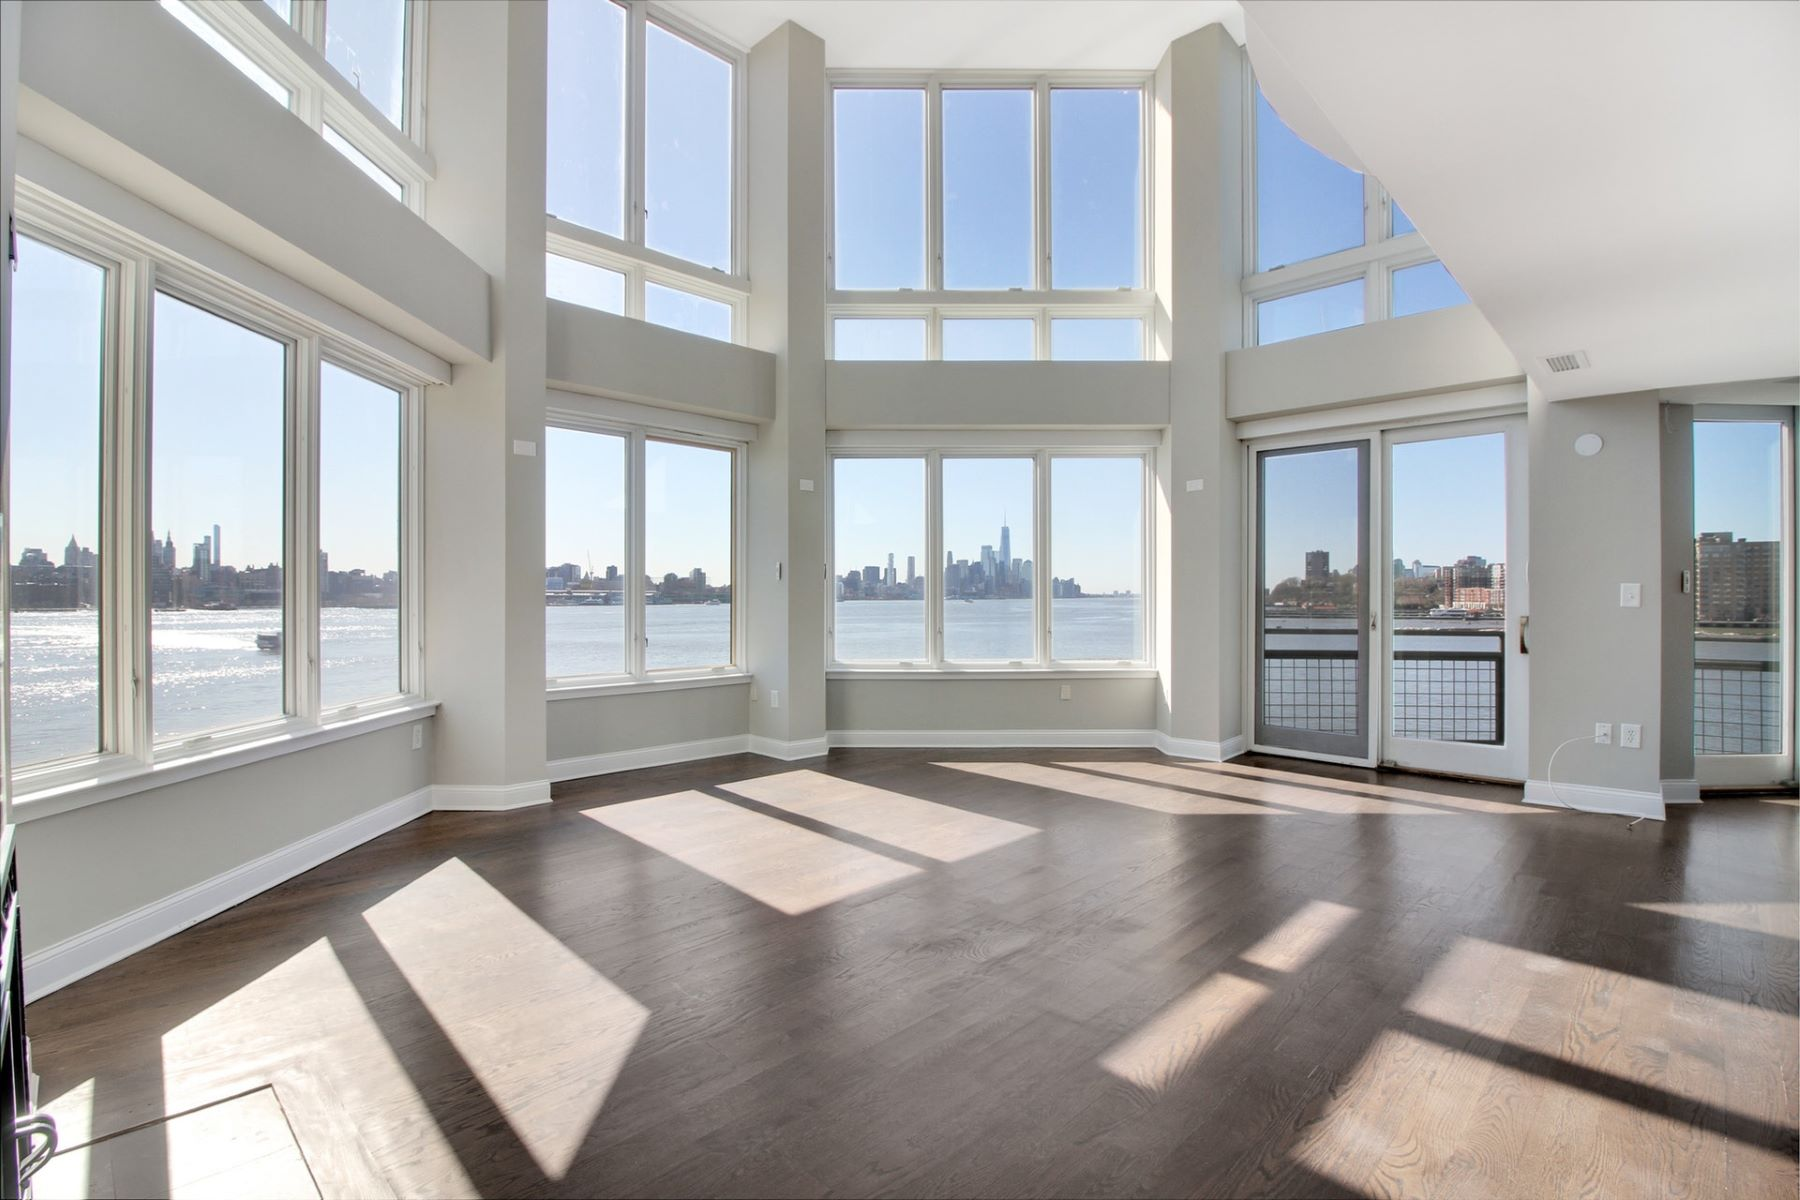 Appartement en copropriété pour l Vente à Welcome Home to This Beautiful, Sun-Filled 3 Bedroom / 3 Bathroom Condo 600 Harbor Blvd #1070, Weehawken, New Jersey 07086 États-Unis